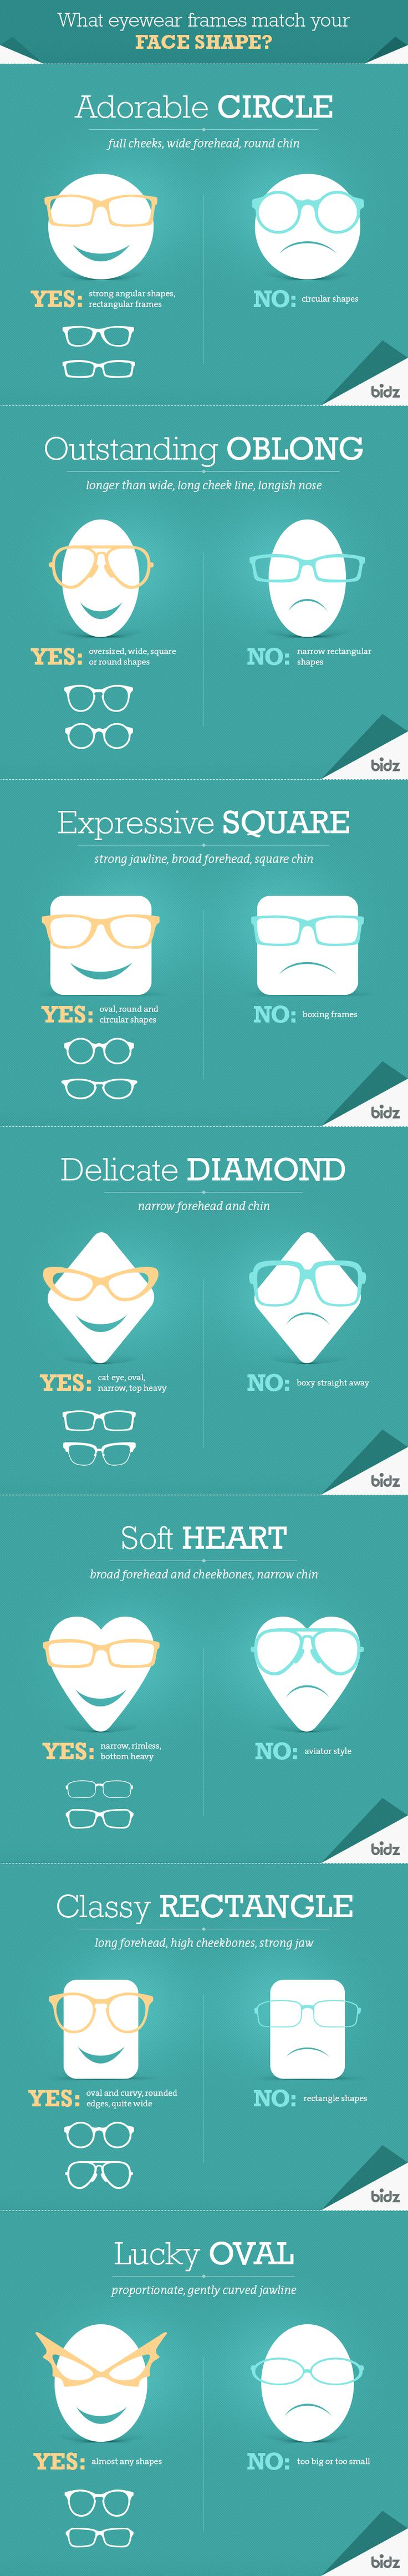 How To Choose Sunglasses For Your Face Shape ...